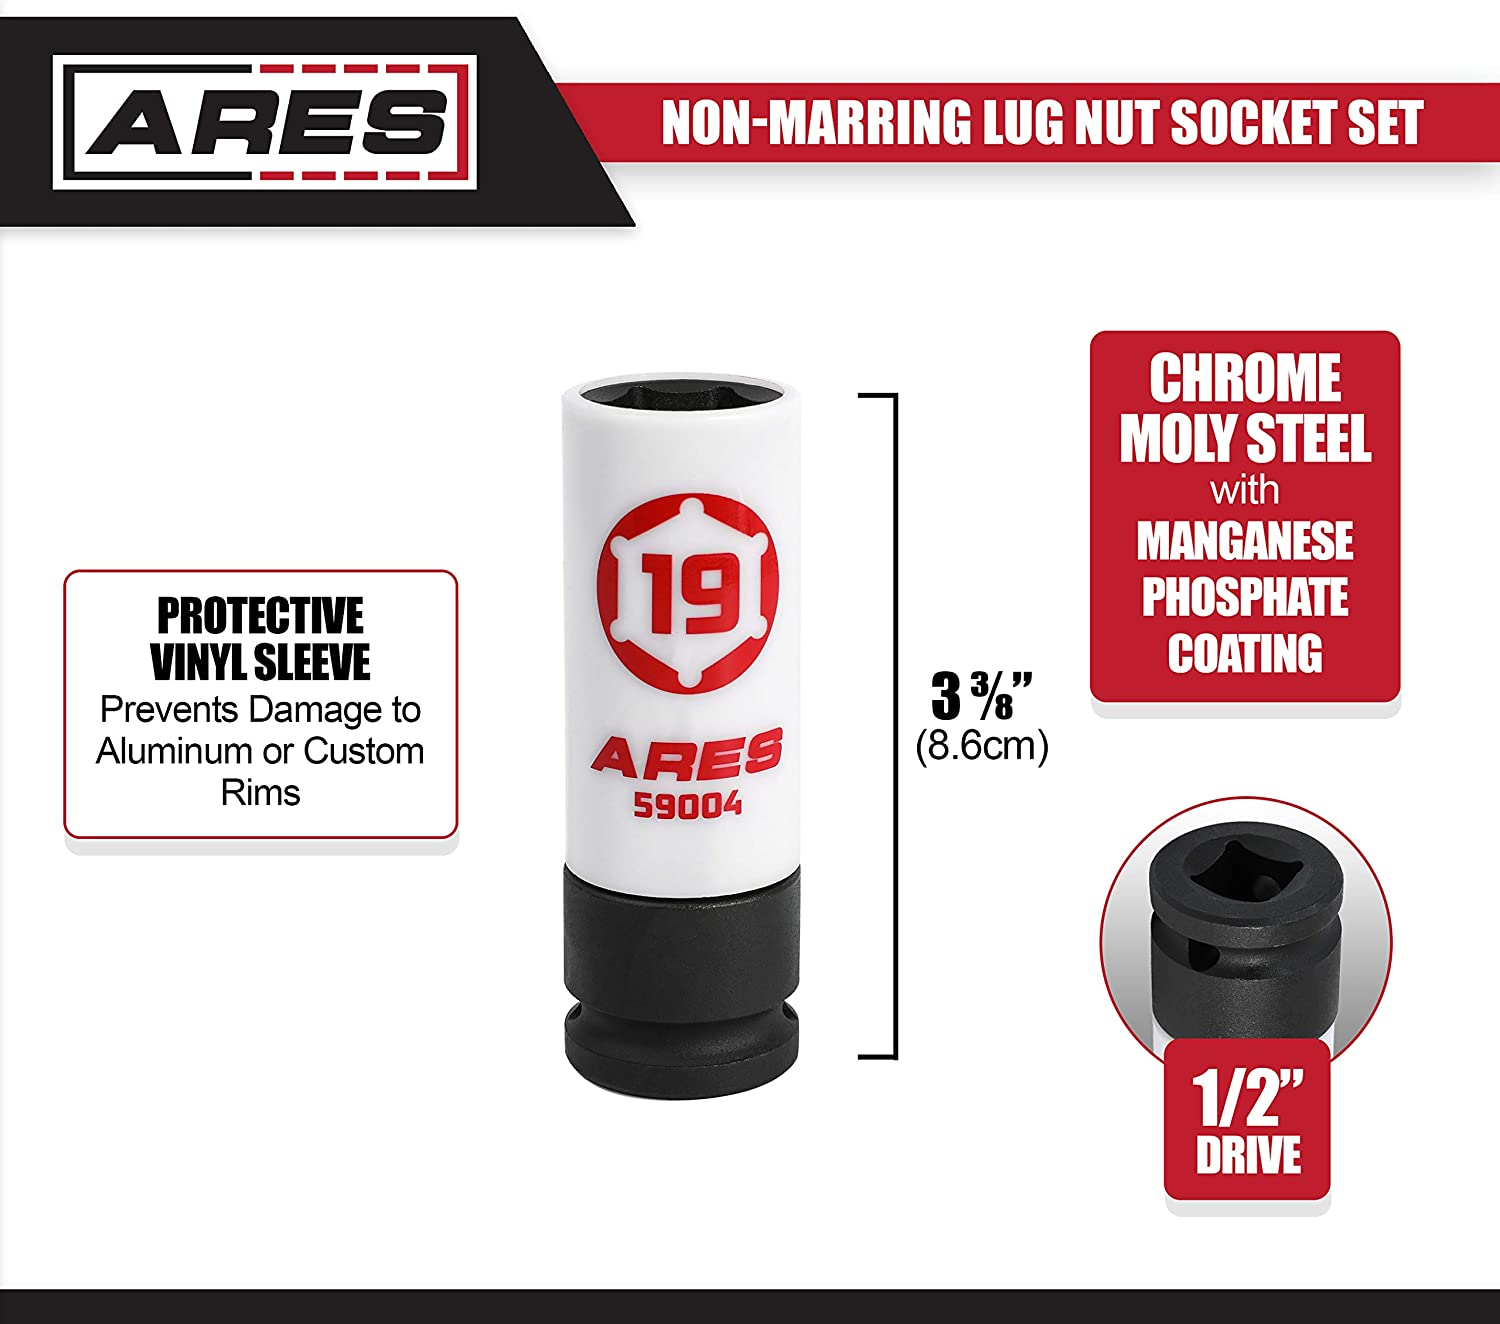 ARES 59005-21mm 1//2-Inch Drive Non-Marring Lug Nut Socket Color Coded /& Laser Etched for Easy Identification Protective Sleeve Prevents Damage to Custom Rims /& Lug Nuts